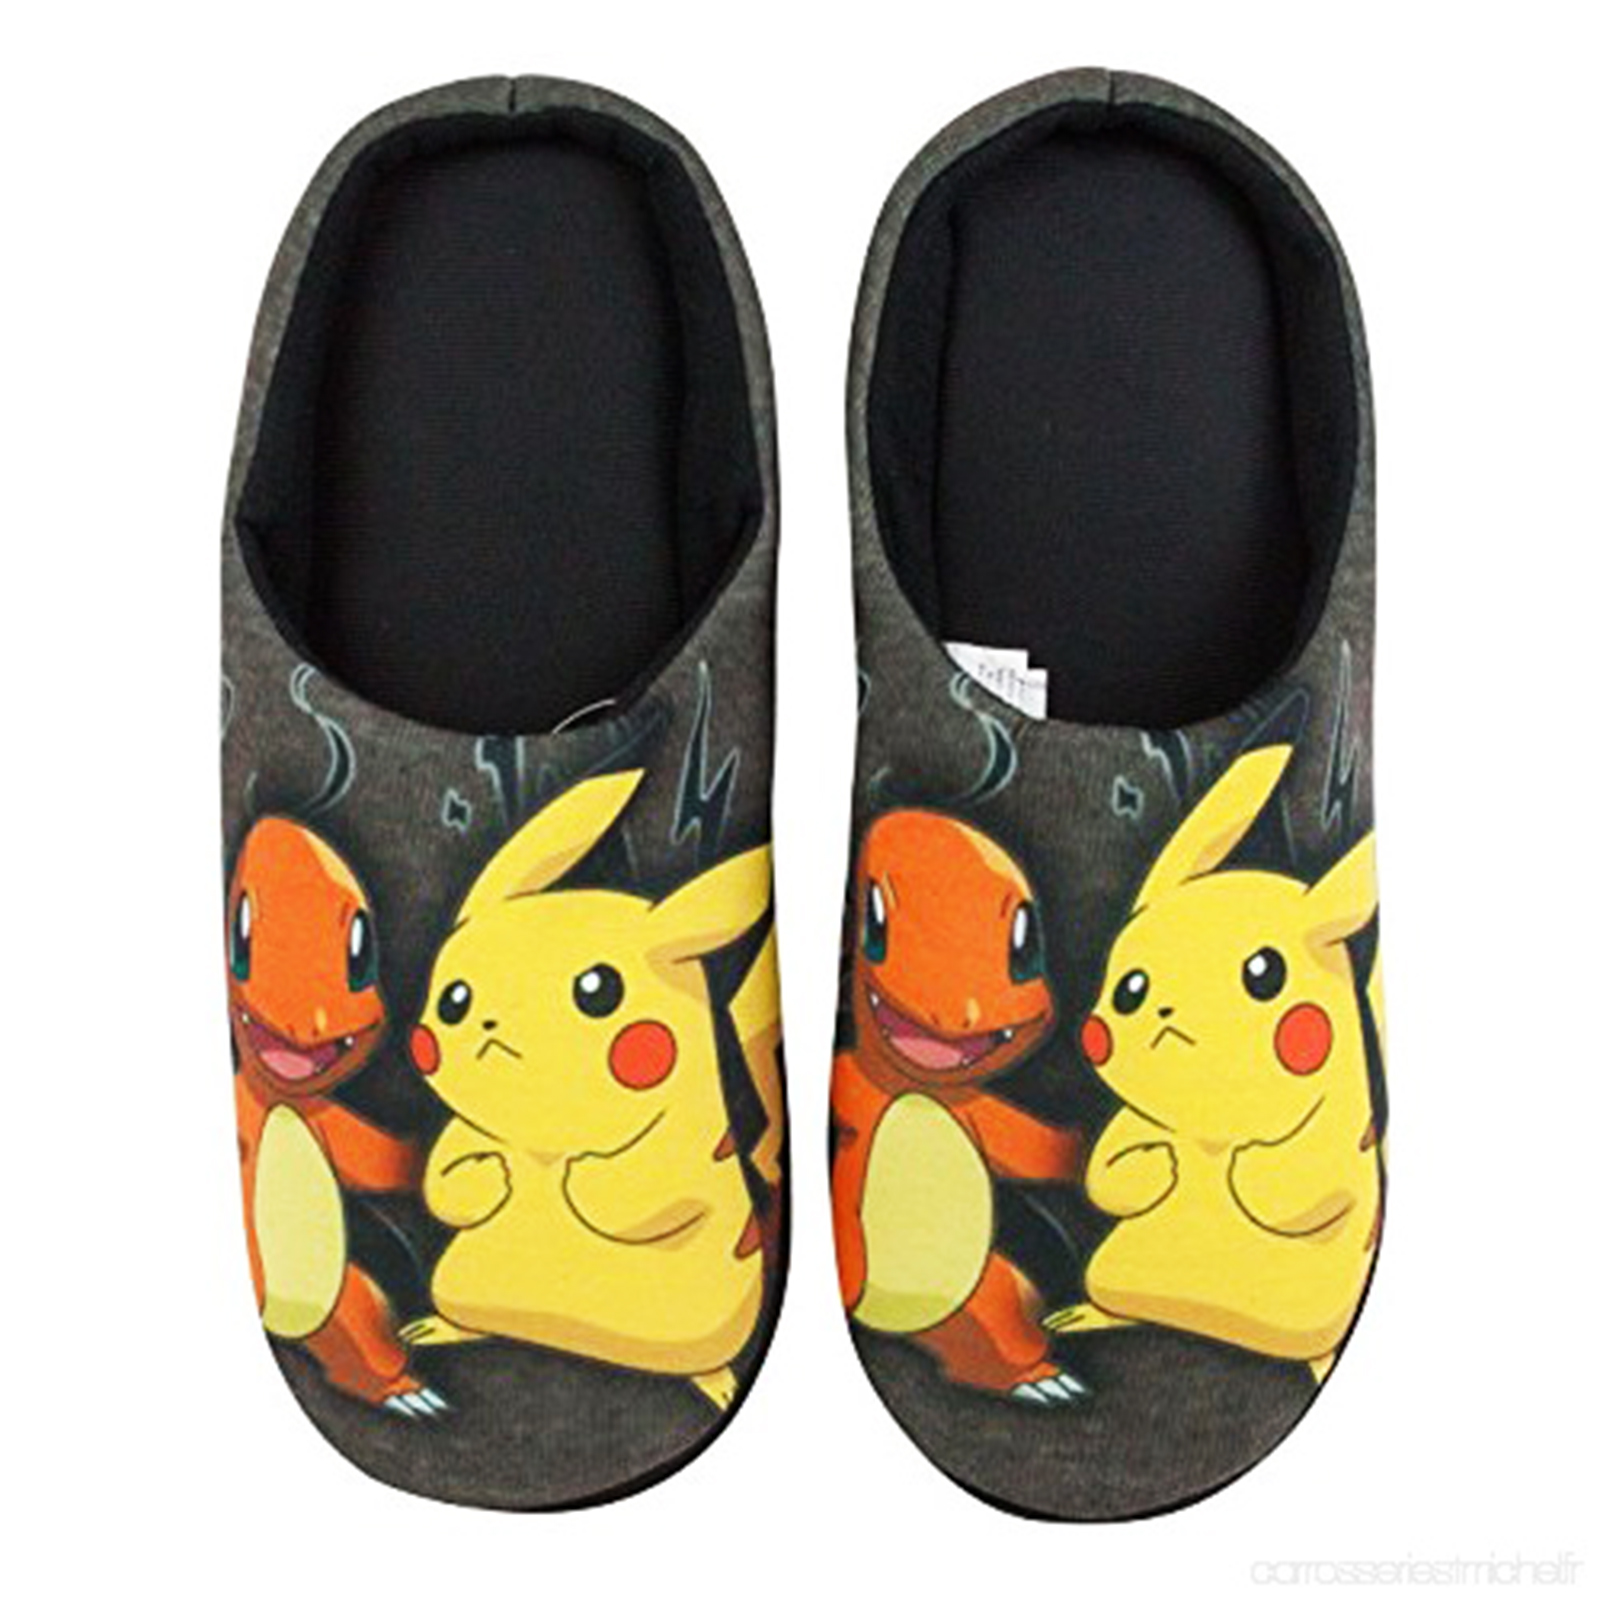 MENS-NOVELTY-POKEMON-HUXLEY-SLIPPERS-SLIP-ON-WARM-COMFY-MULES-XMAS-GIFT-UK-7-12 thumbnail 5